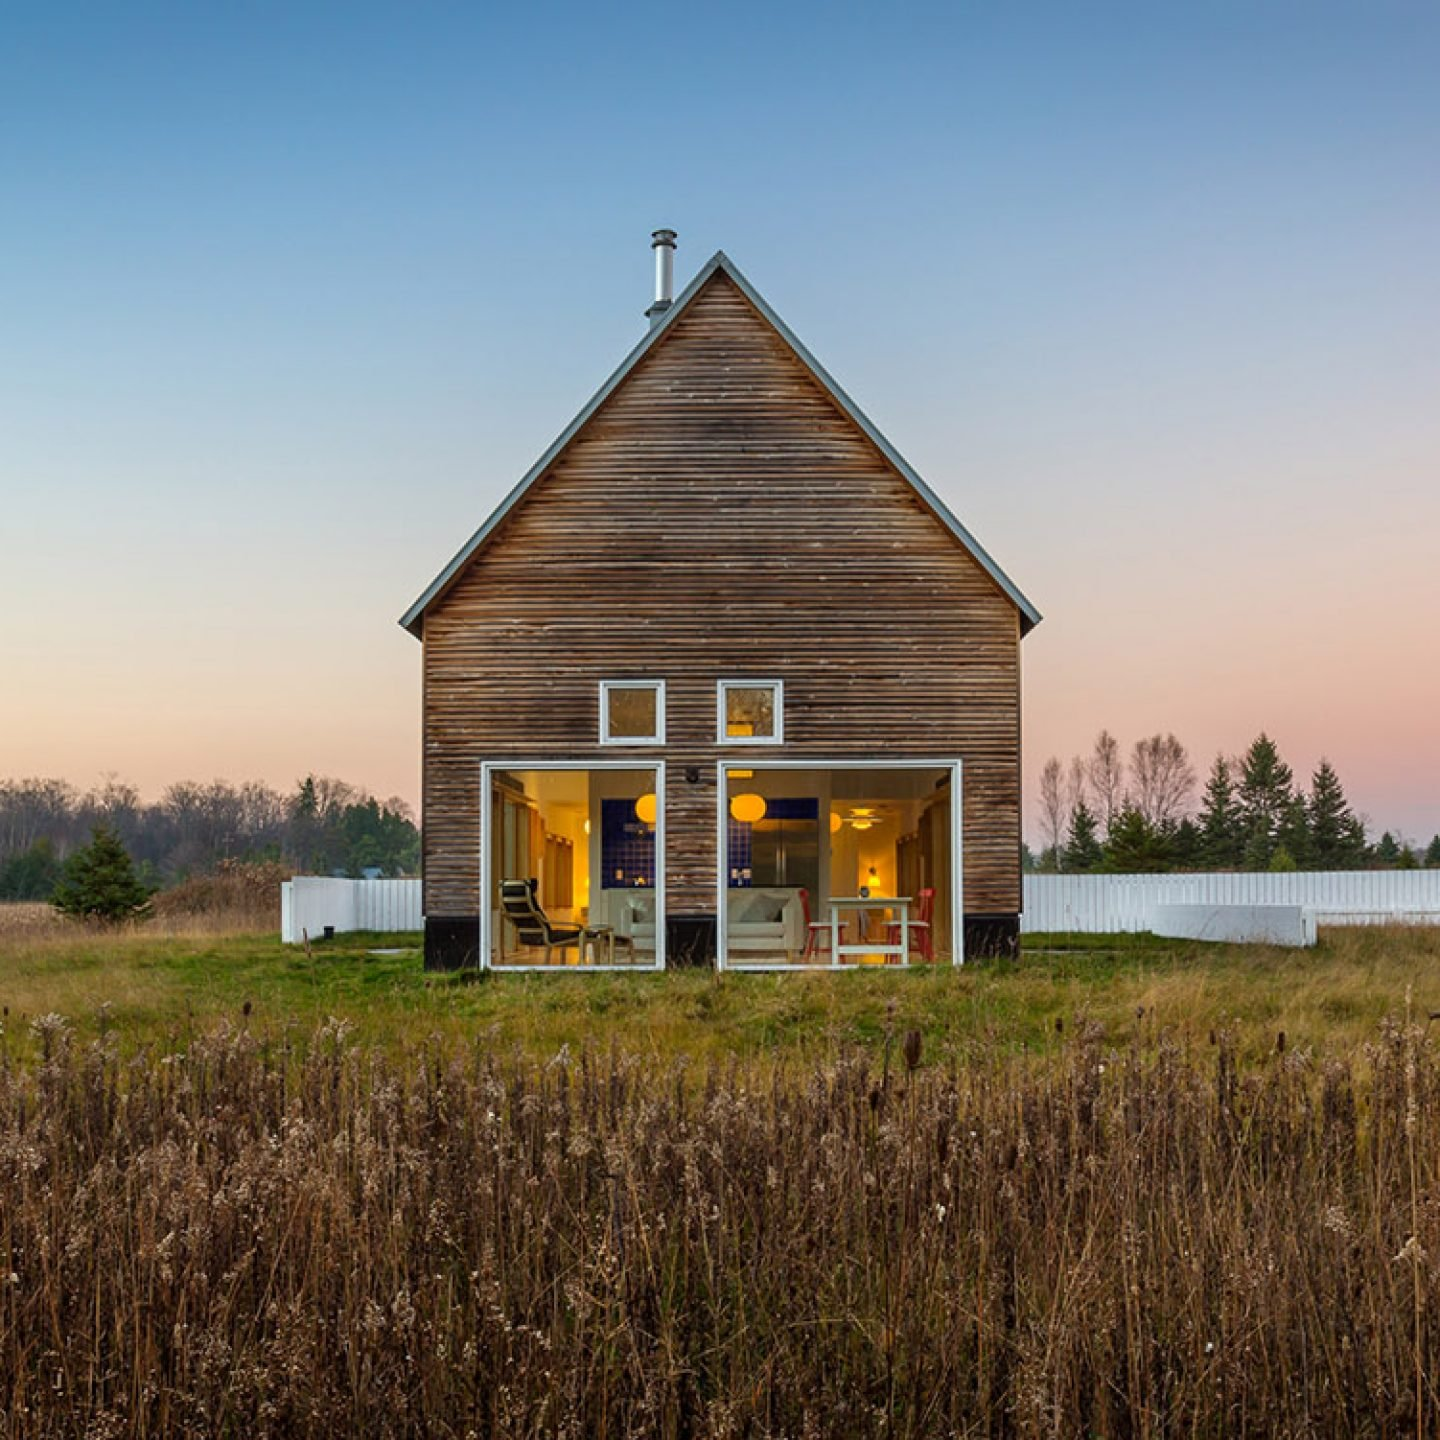 iGNANT-Design-ADesign-Awards-David-Salmela-Malini- Srivastava-Architecture-House-For-Beth-001